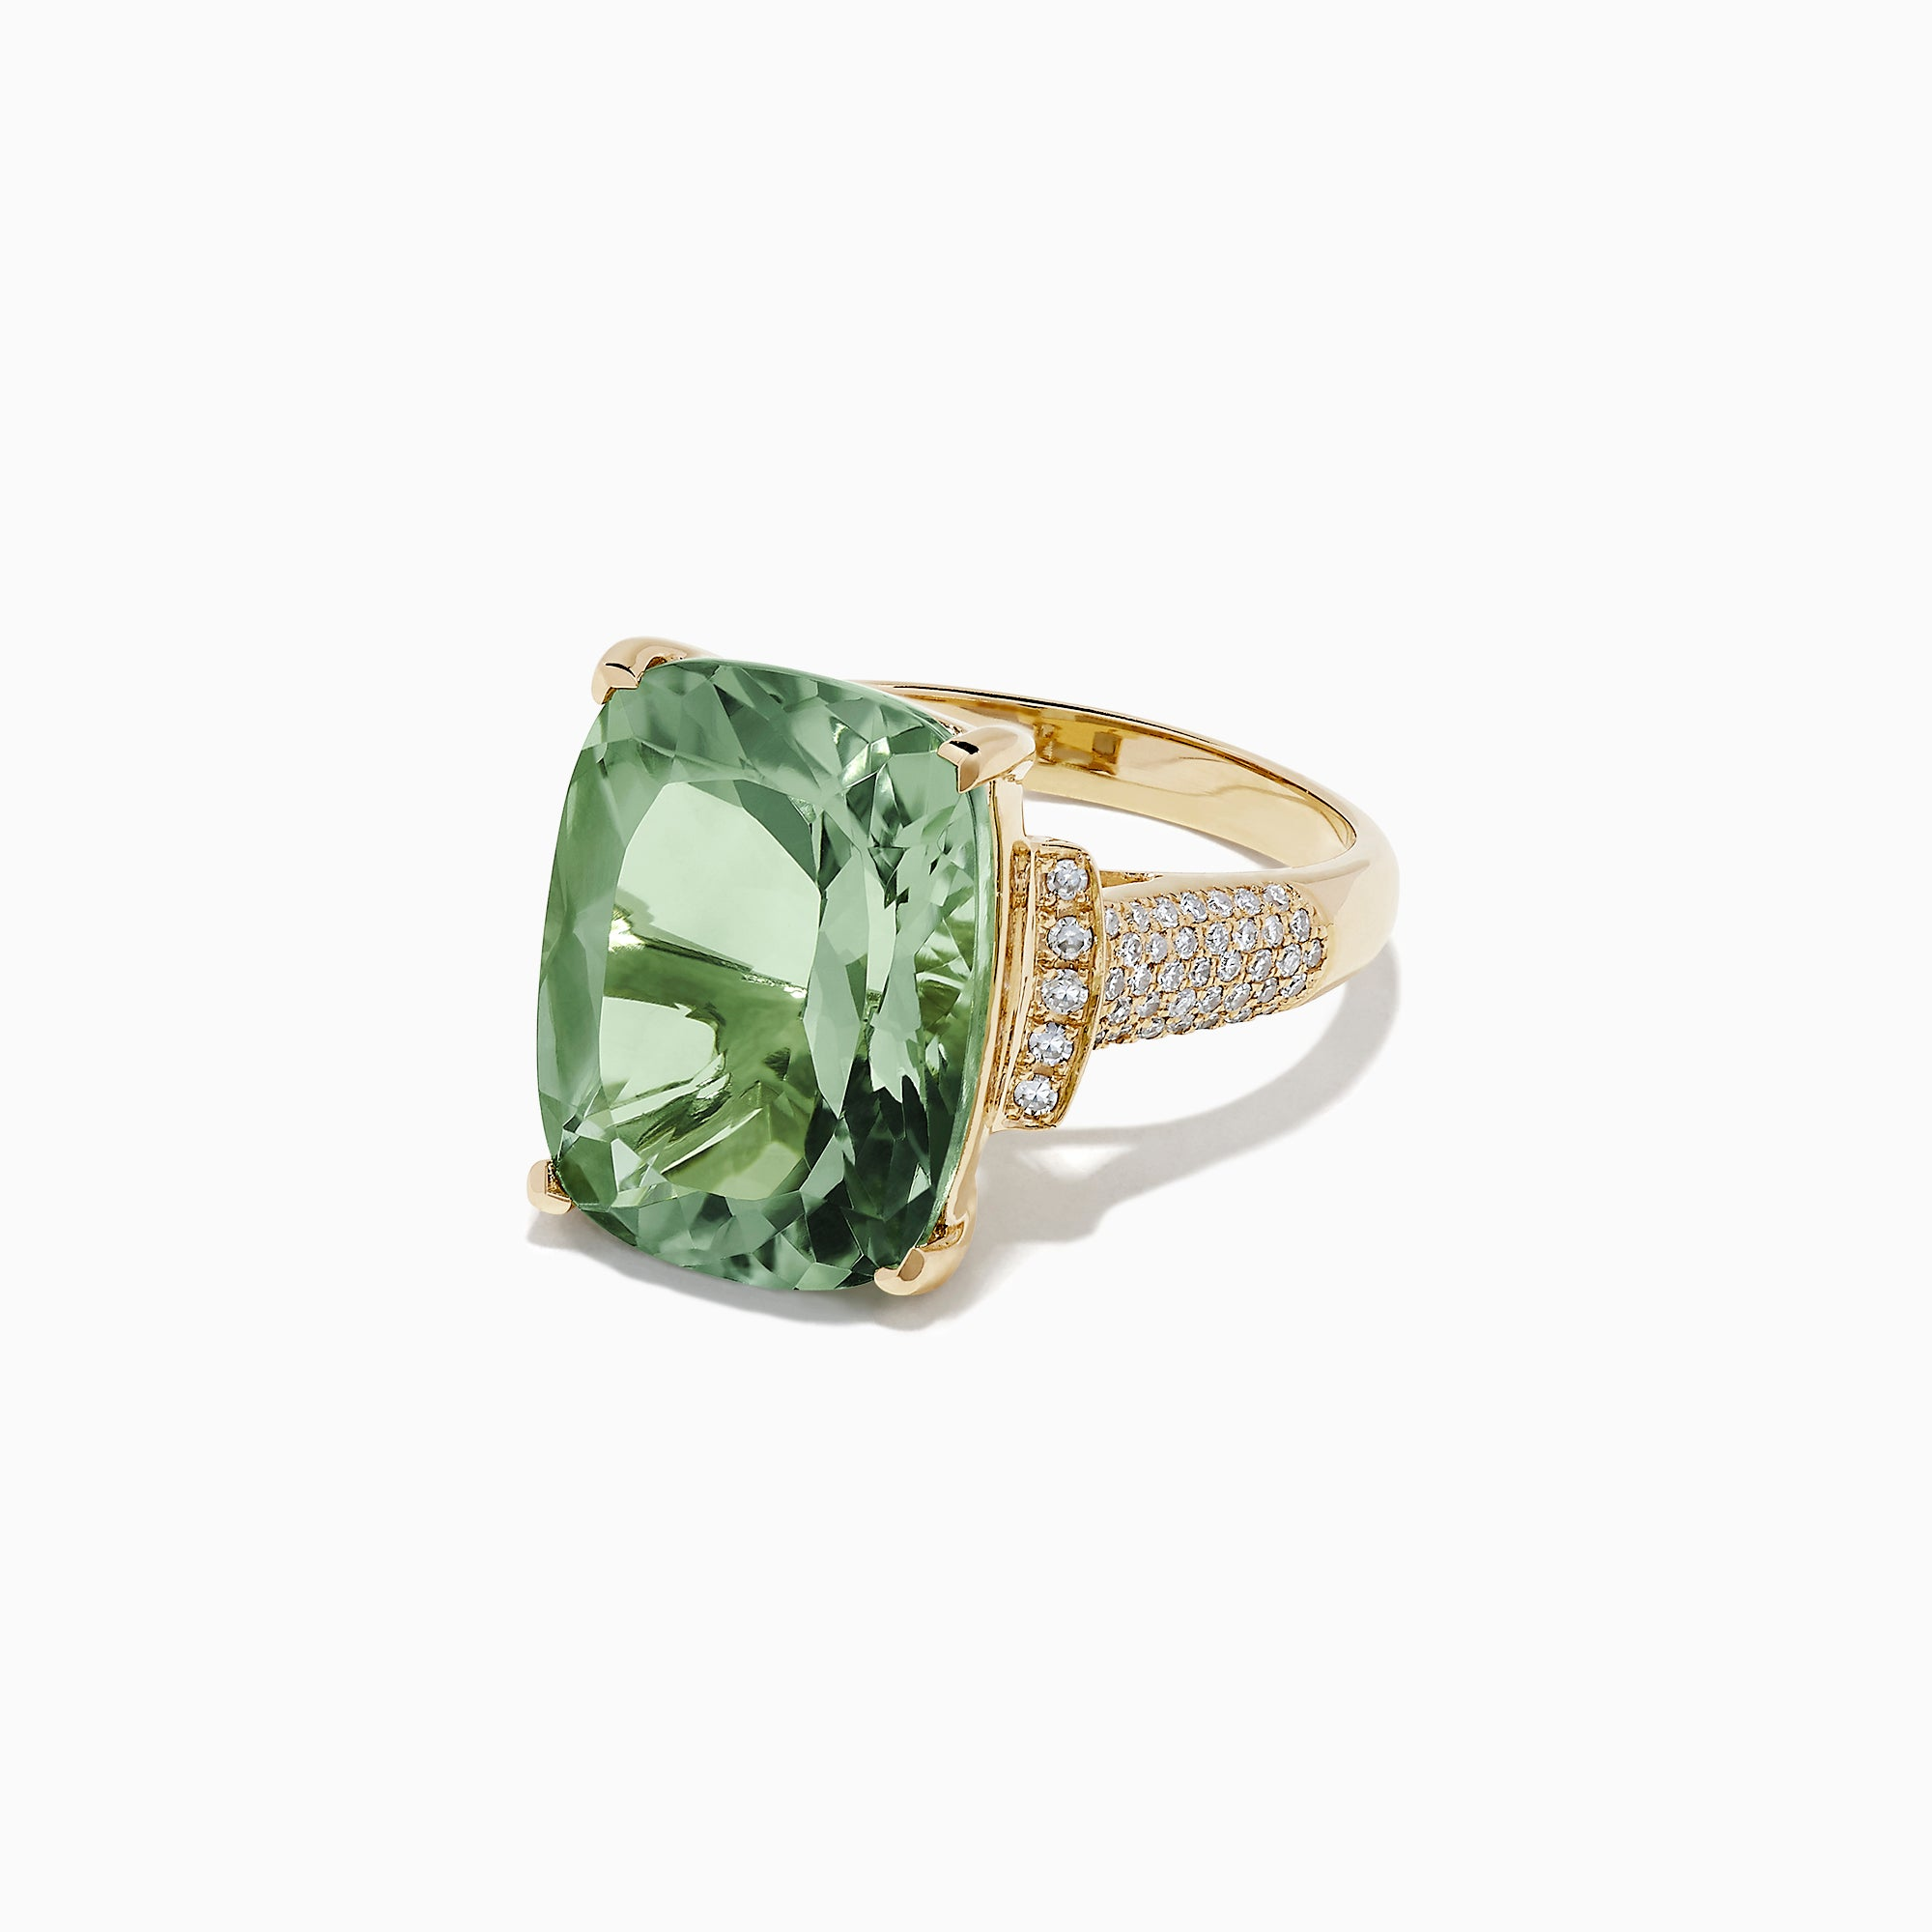 Effy 14K Yellow Gold Green Amethyst and Diamond Cocktail Ring, 8.62 TCW